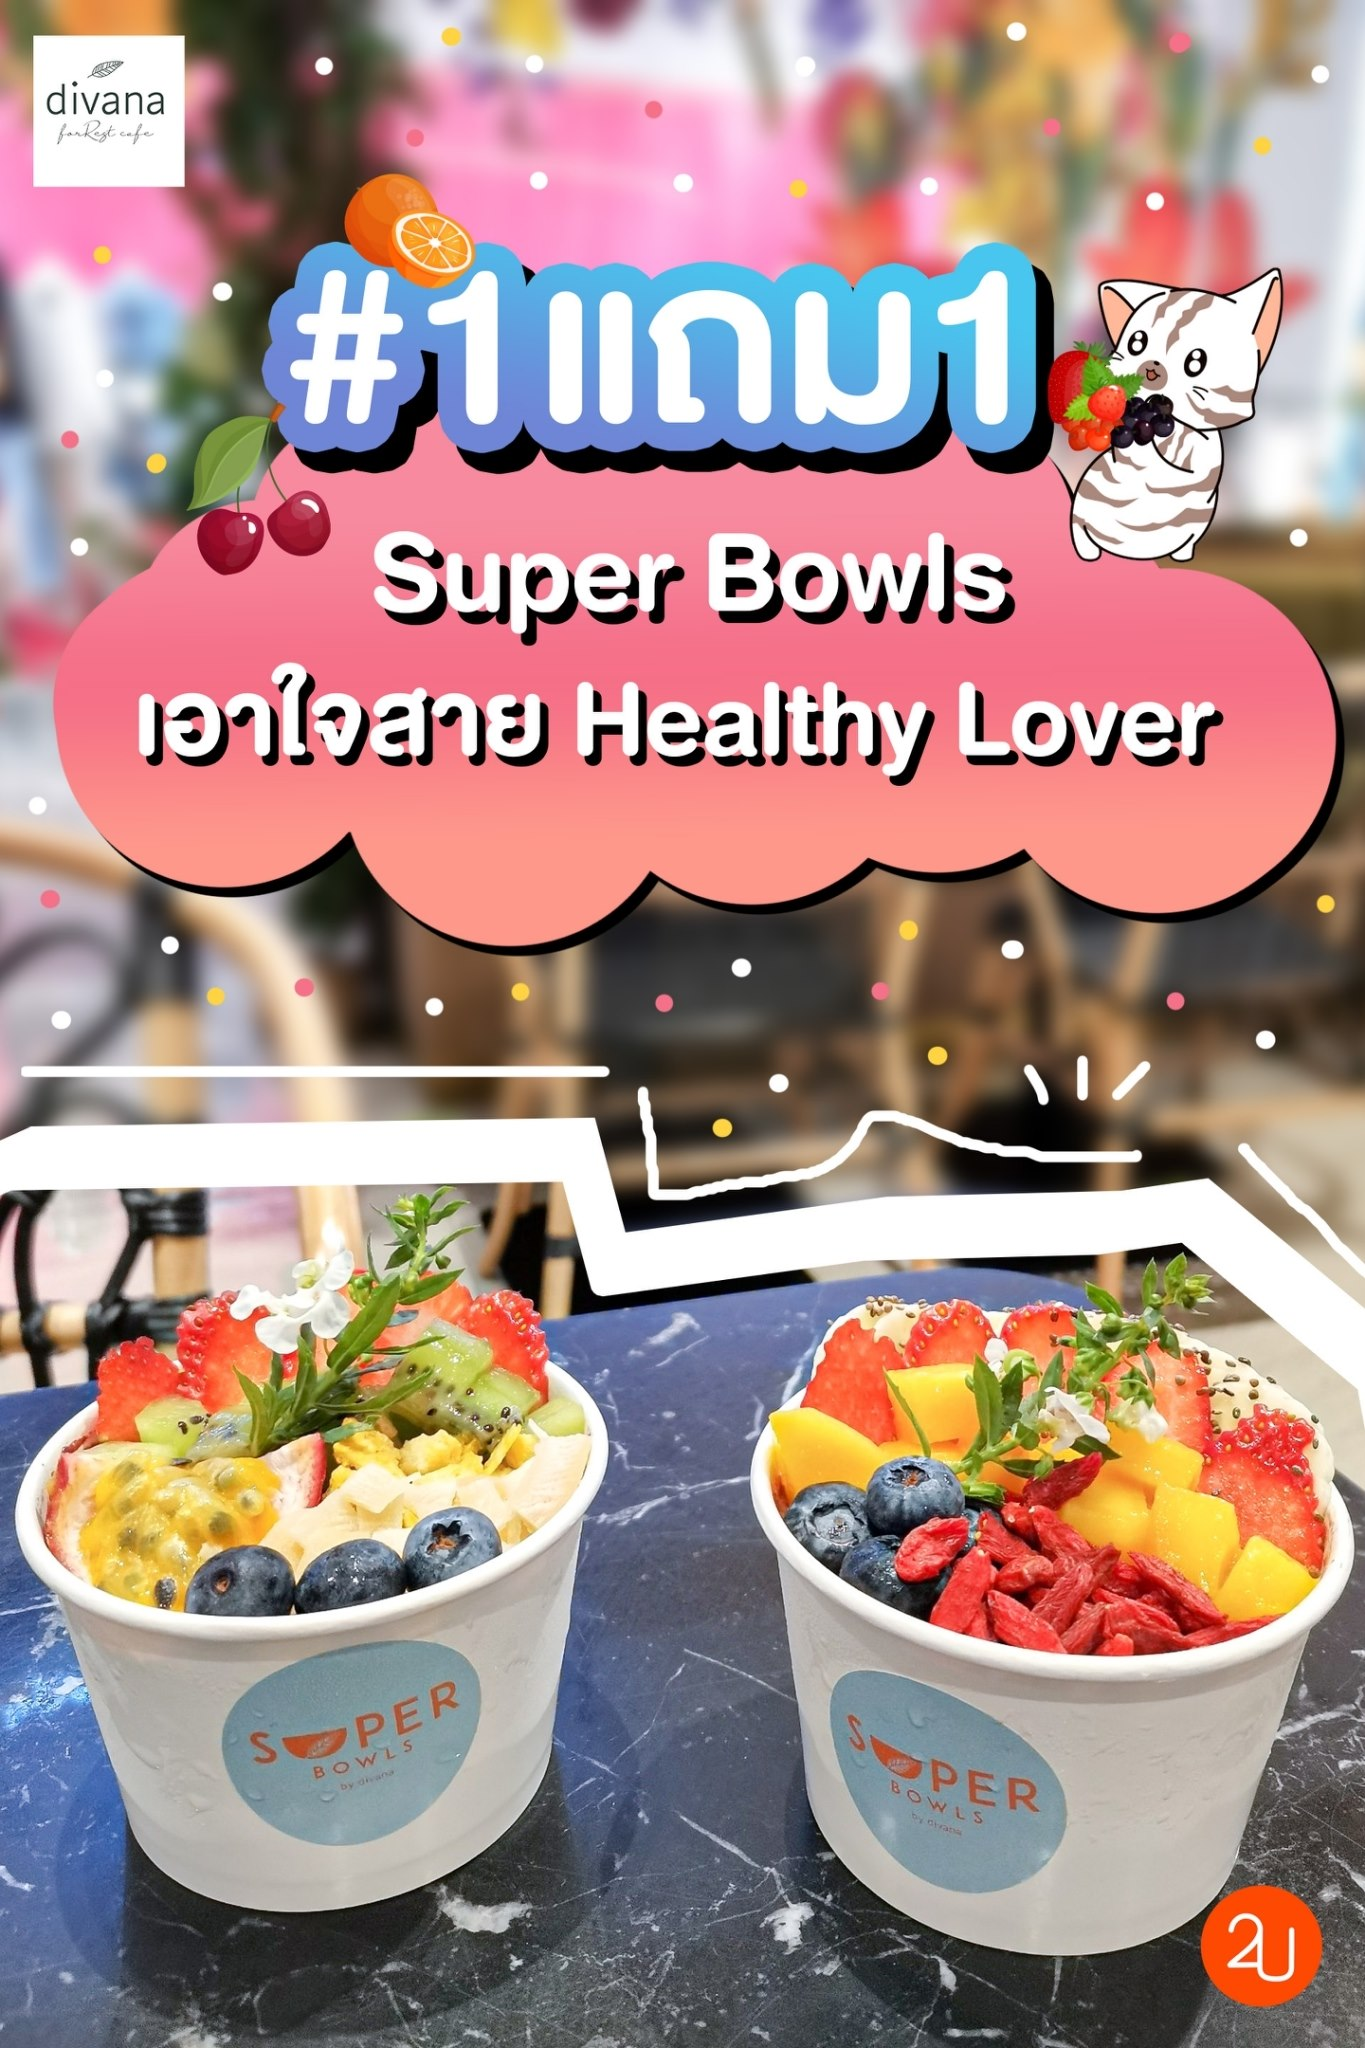 Promotion Super Bowl by Divana buy 1 get free 1